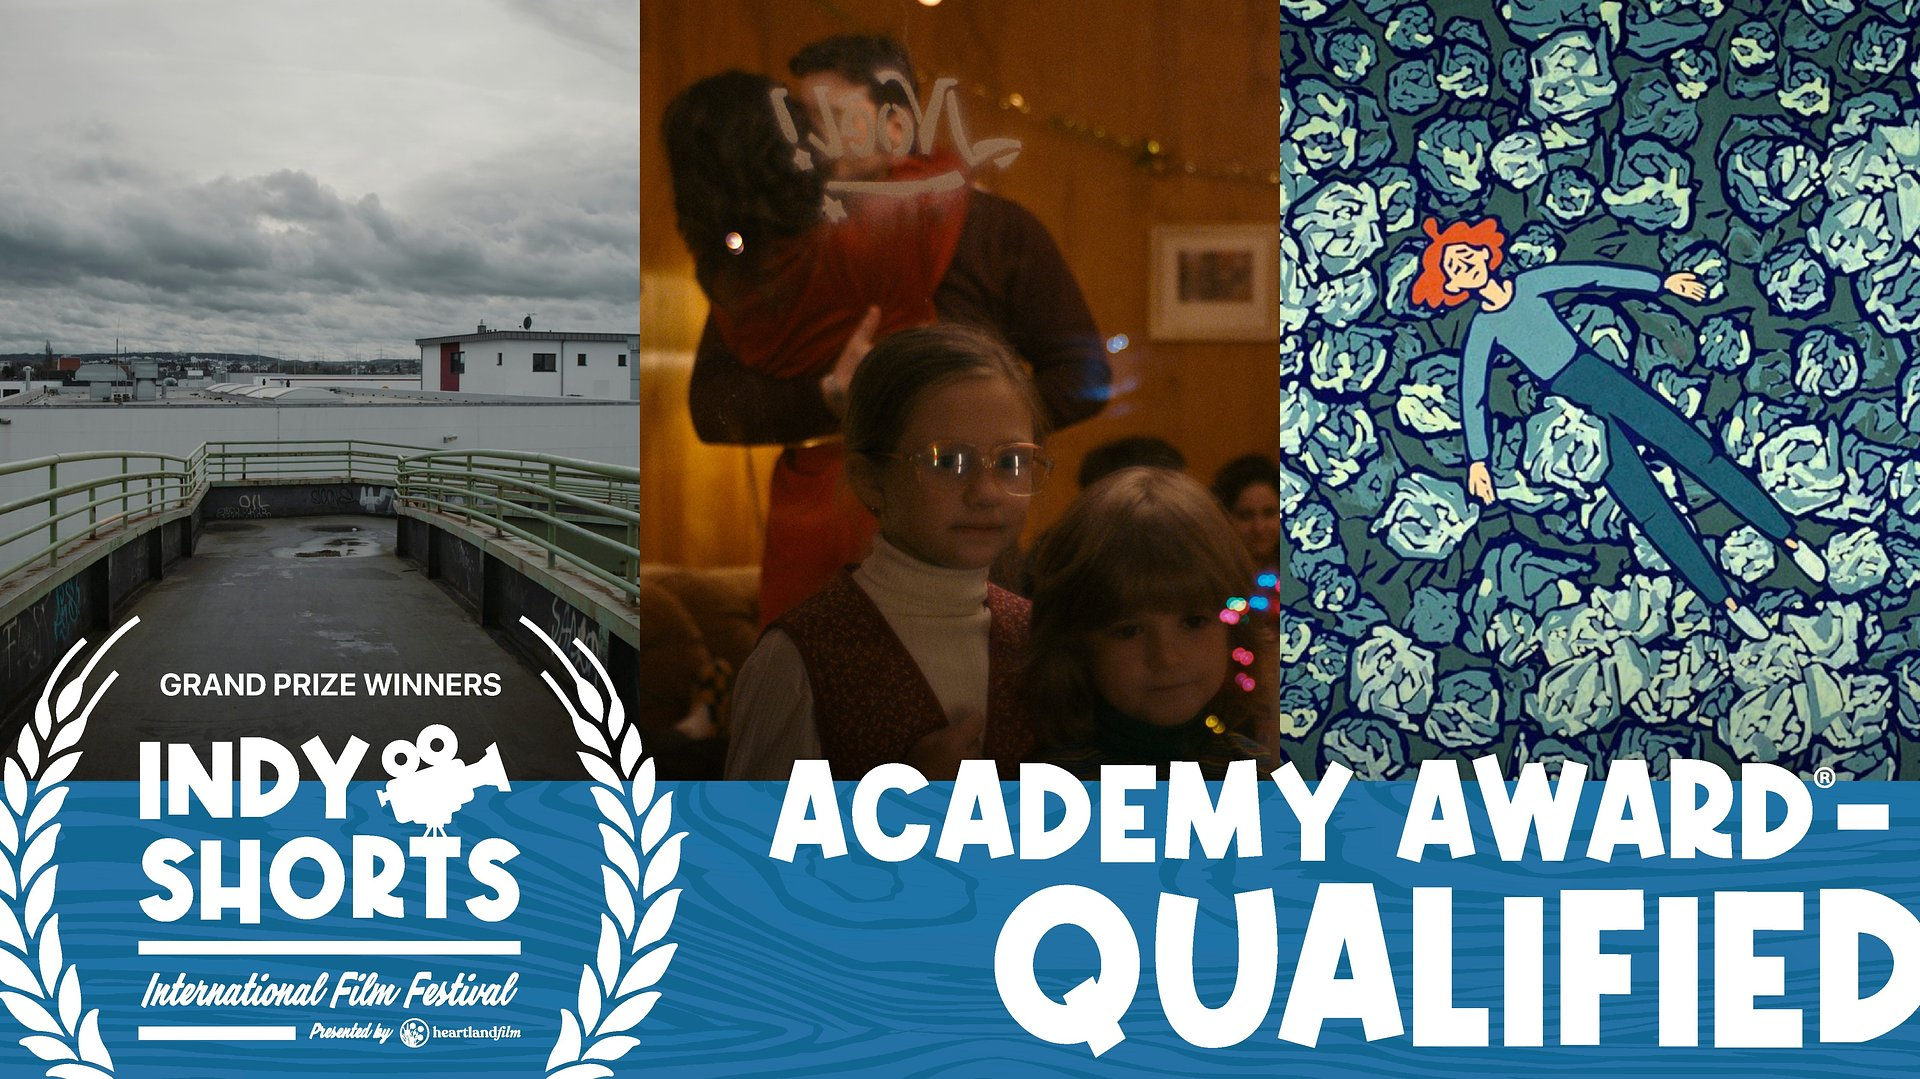 FEMALE FILMMAKERS SWEEP ACADEMY AWARD®-QUALIFYING GRAND PRIZES AT INDY SHORTS INTERNATIONAL FILM FESTIVAL